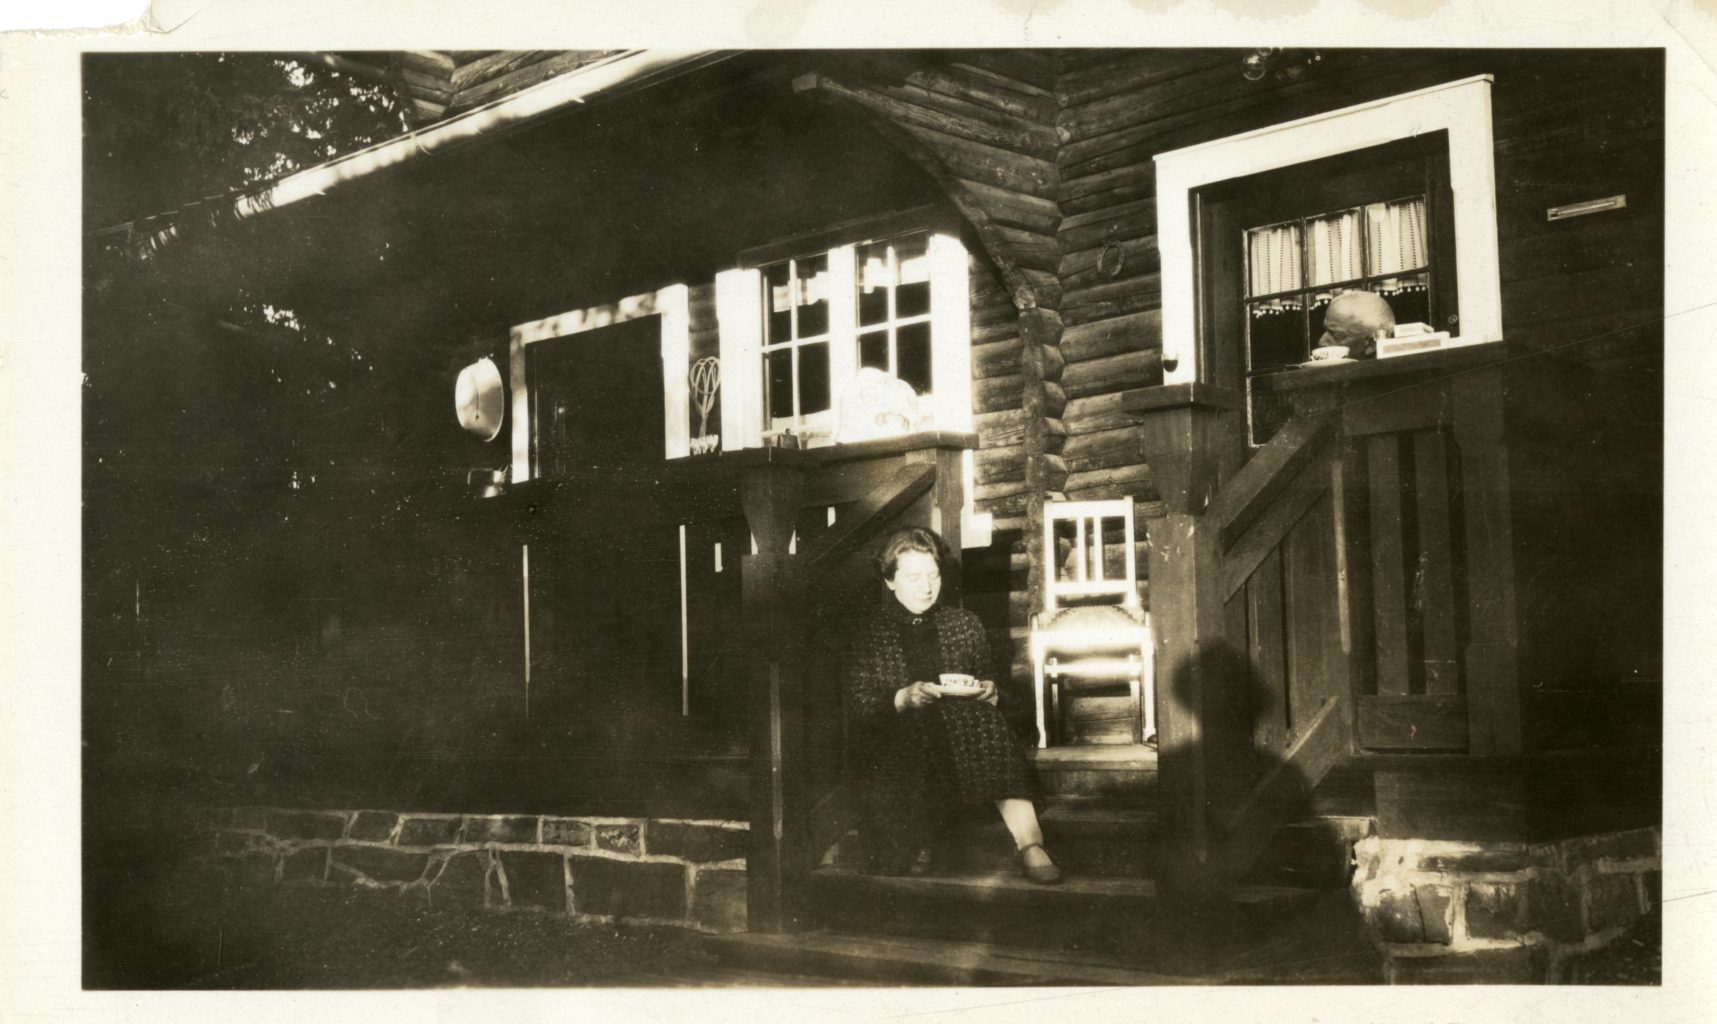 A woman sits on the steps of a front porch. A man sits on the right side of the porch, only his head is visible. The photographers shadow is visible.